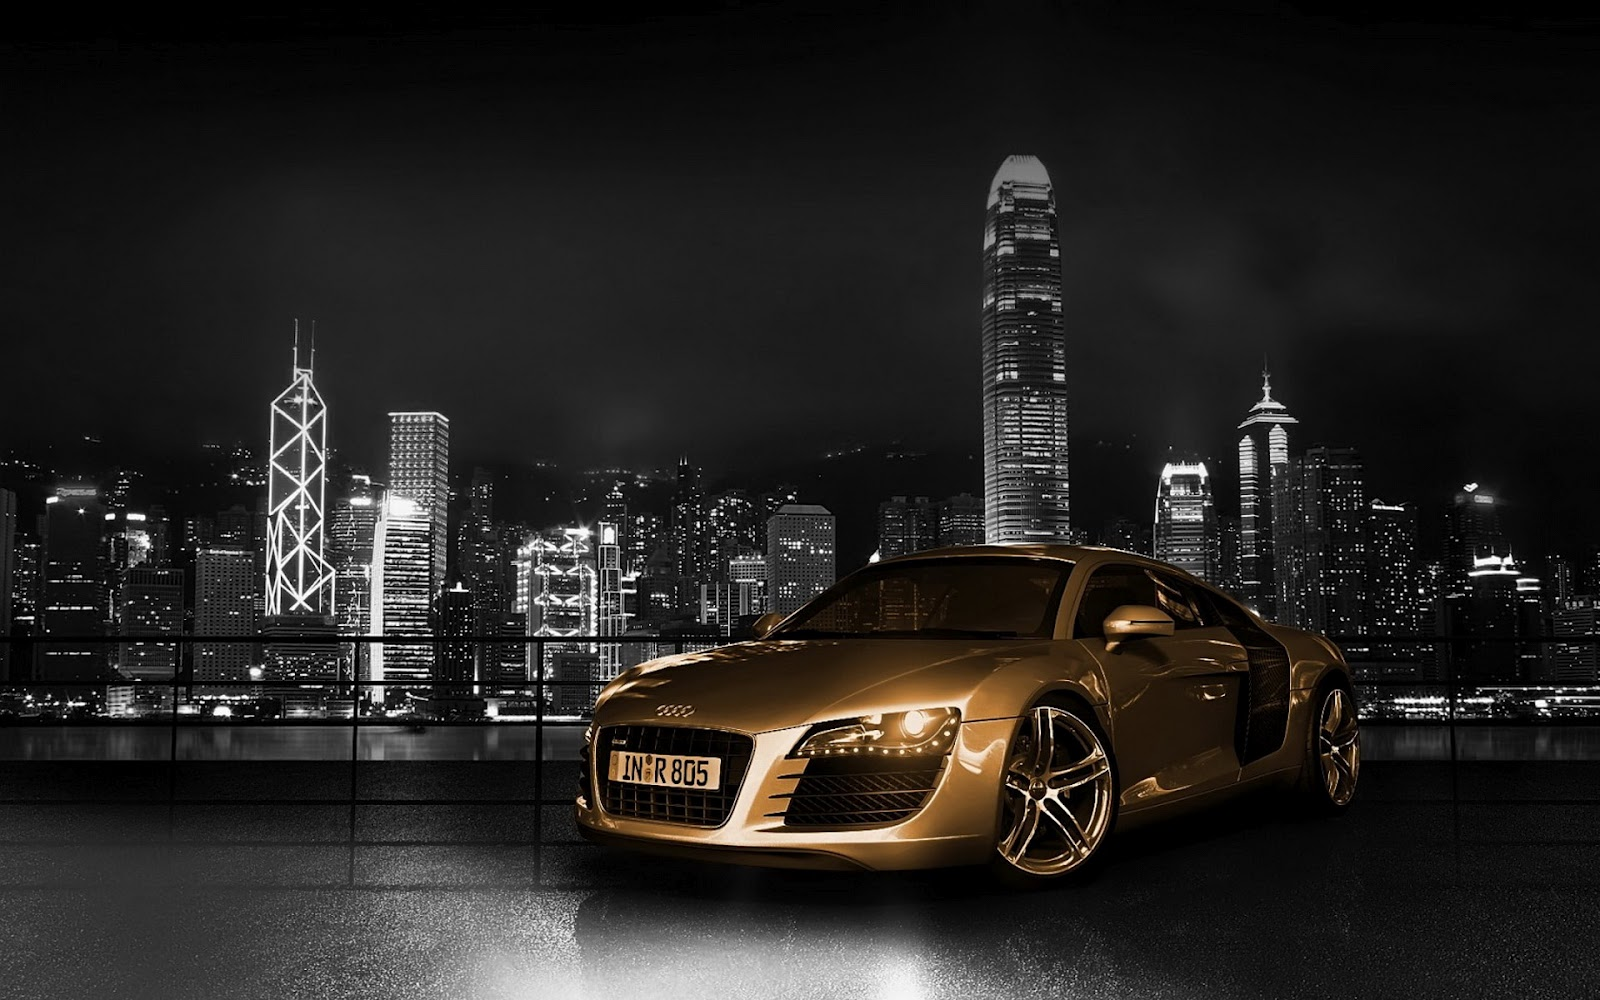 hd cars wallpapers for desktop  Mobile wallpapers